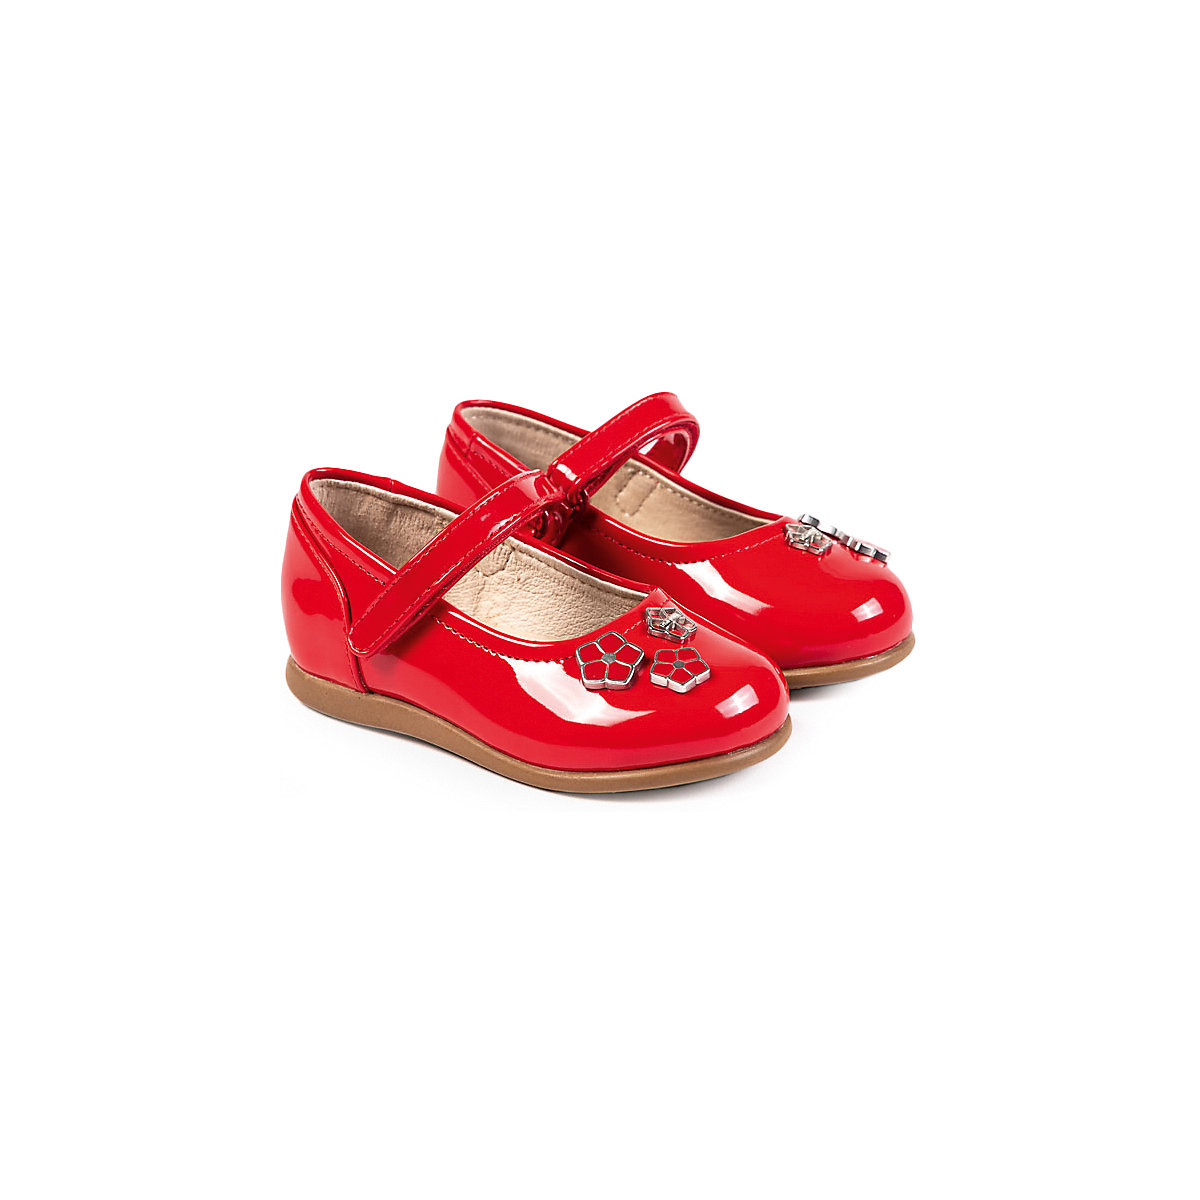 MAYORAL Children's Flats 10644529 Red summer ballet all-season elegant footwear Shoes for girls girl